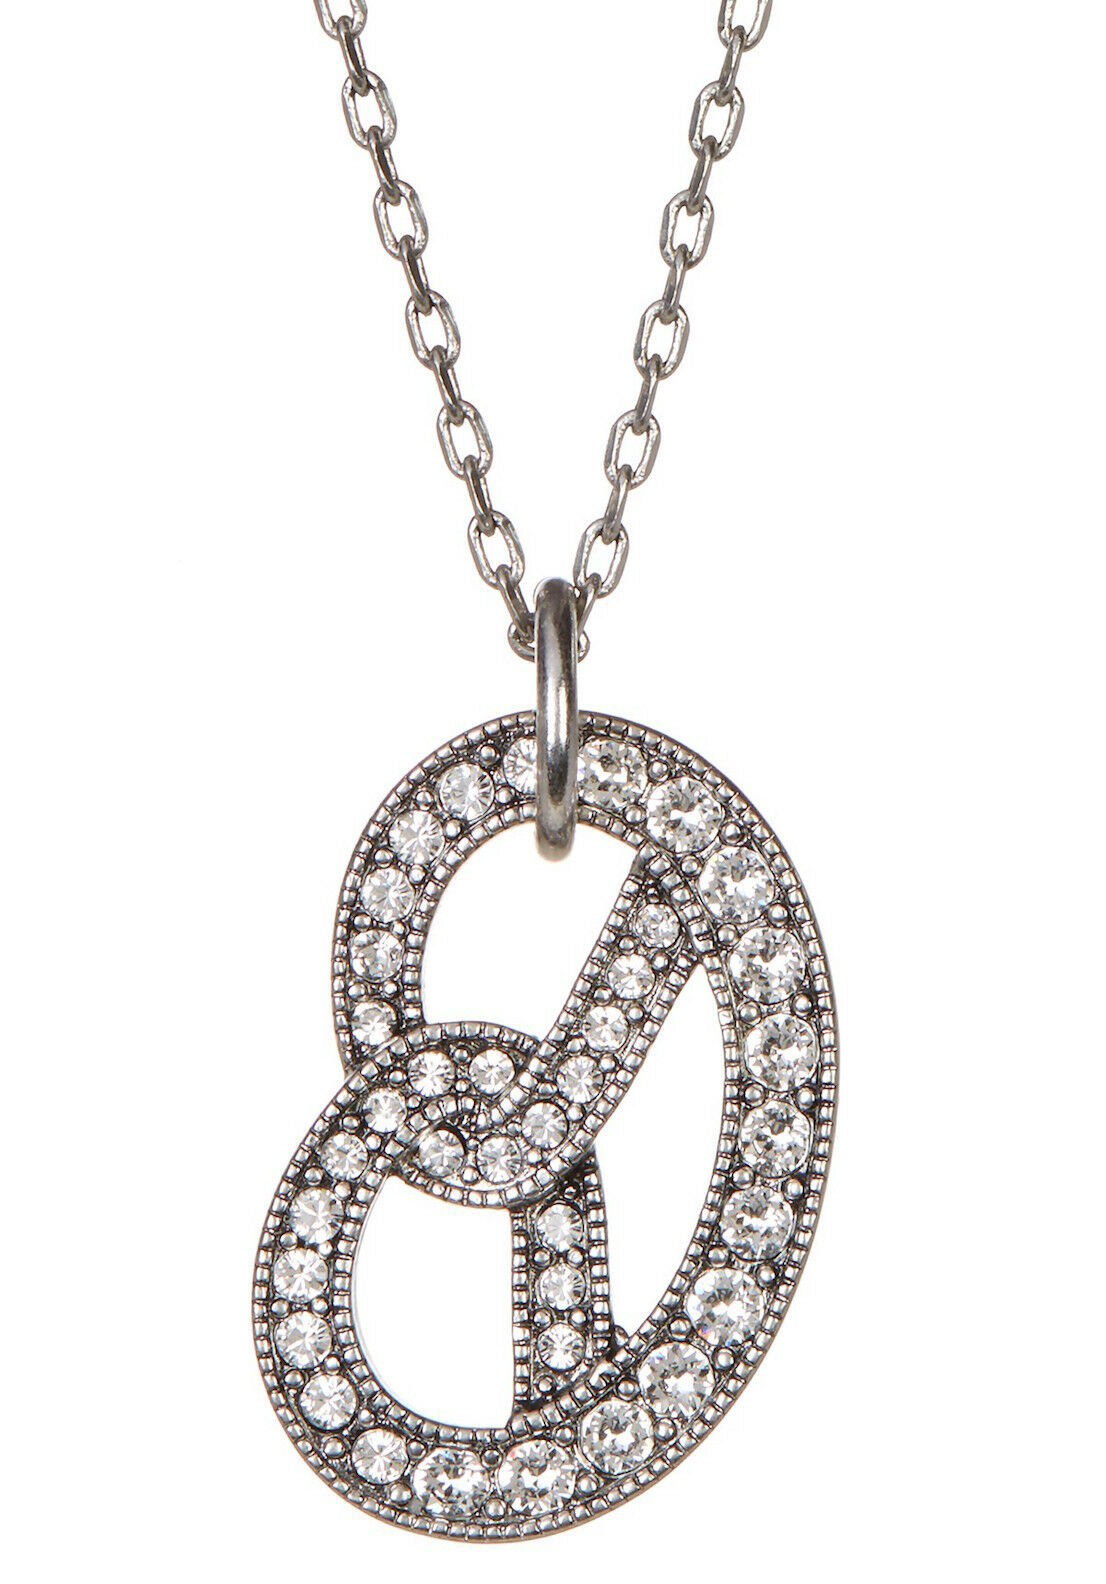 Primary image for Marc Jacobs Necklace Long Pave Pretzel NEW